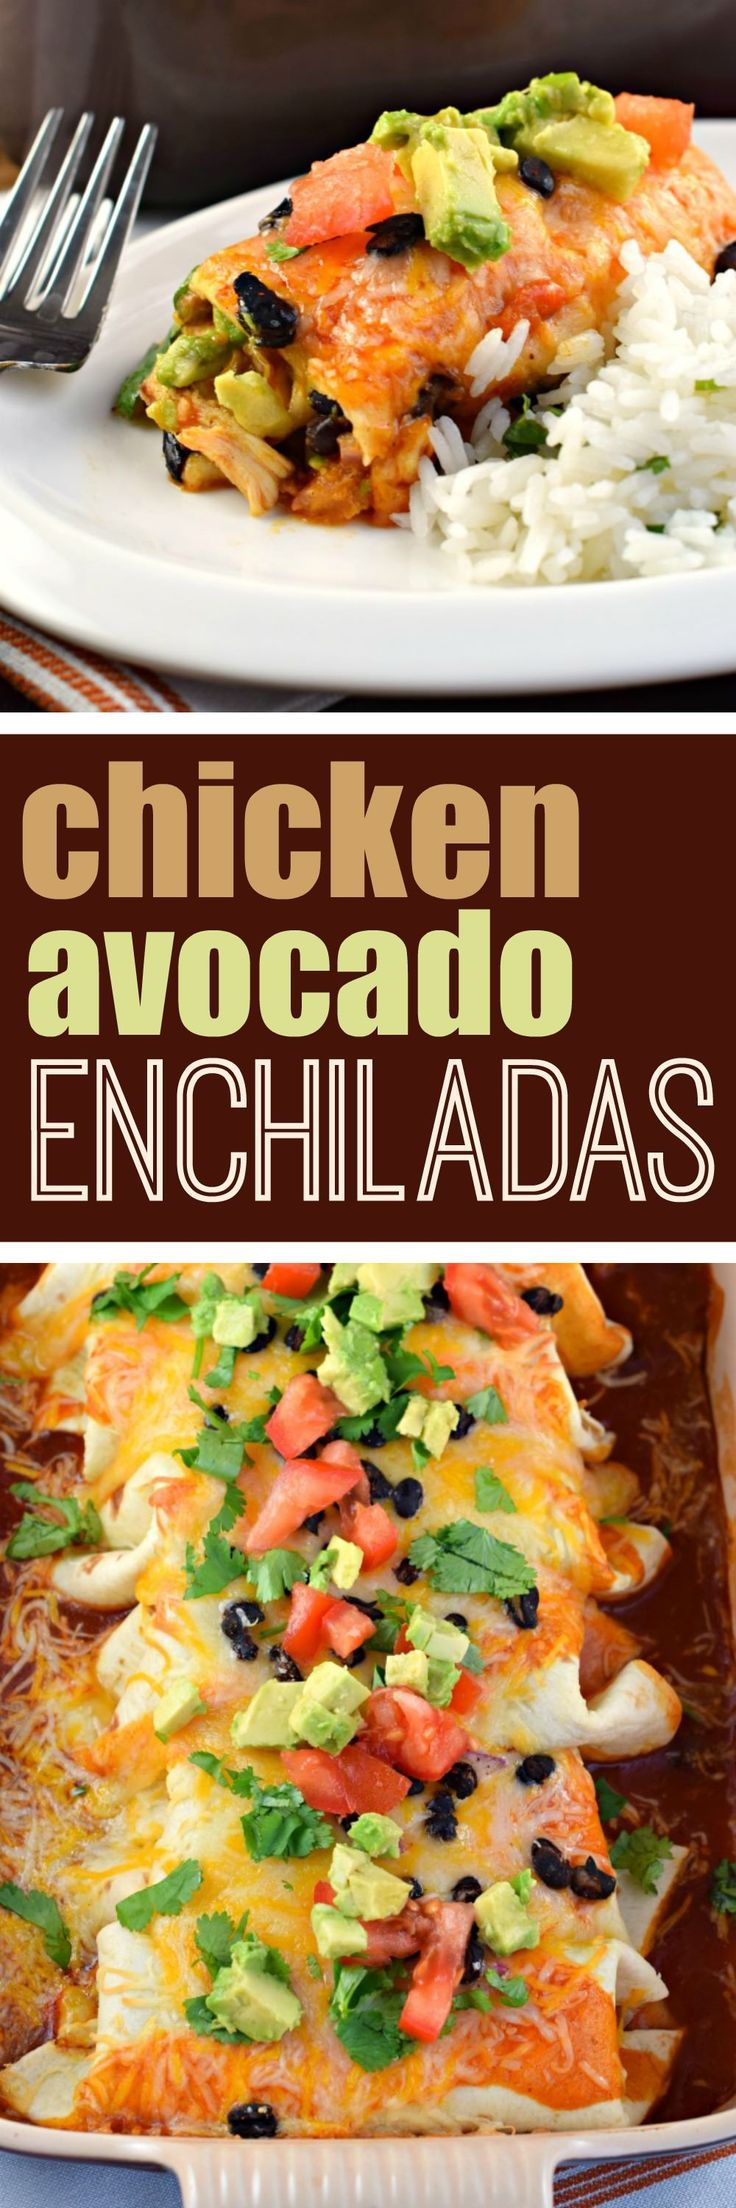 If you're looking for a 30-minute meal idea, these Chicken Avocado Enchiladas are the answer! Packed with flavor and loved by all!